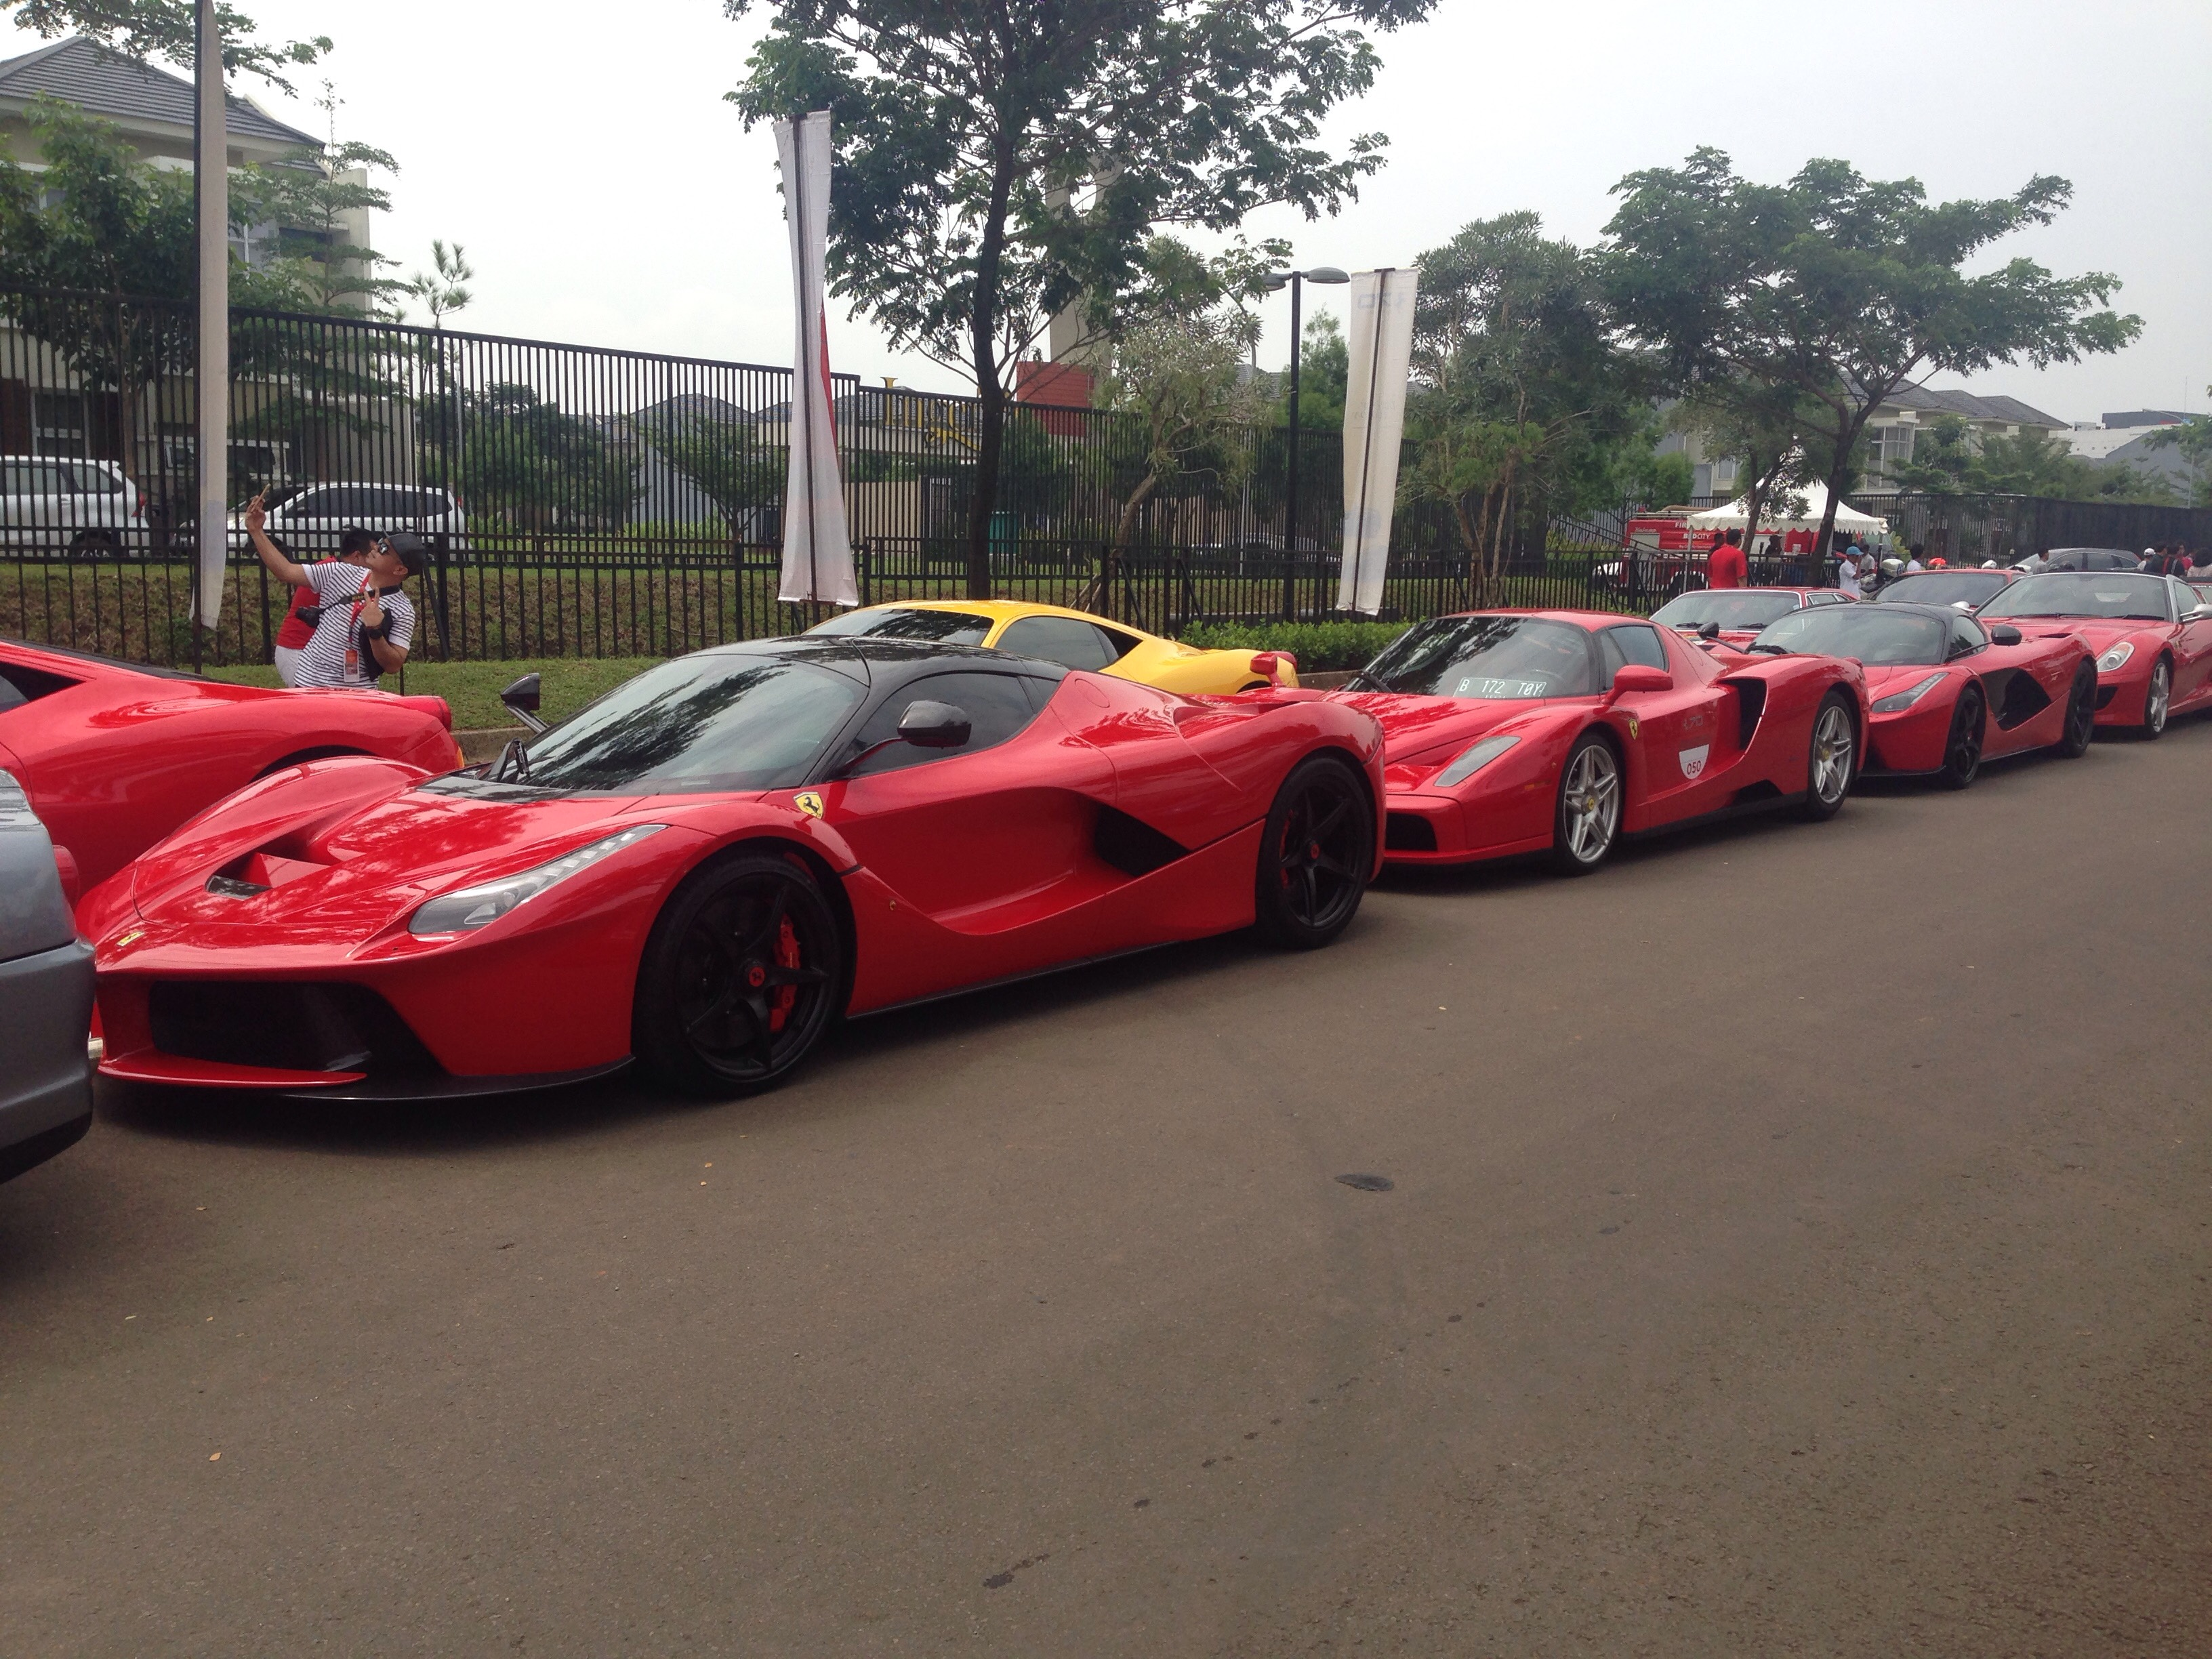 Yesterday S Compilation At Ferrari Festival Of Speed Bsd Indonesia